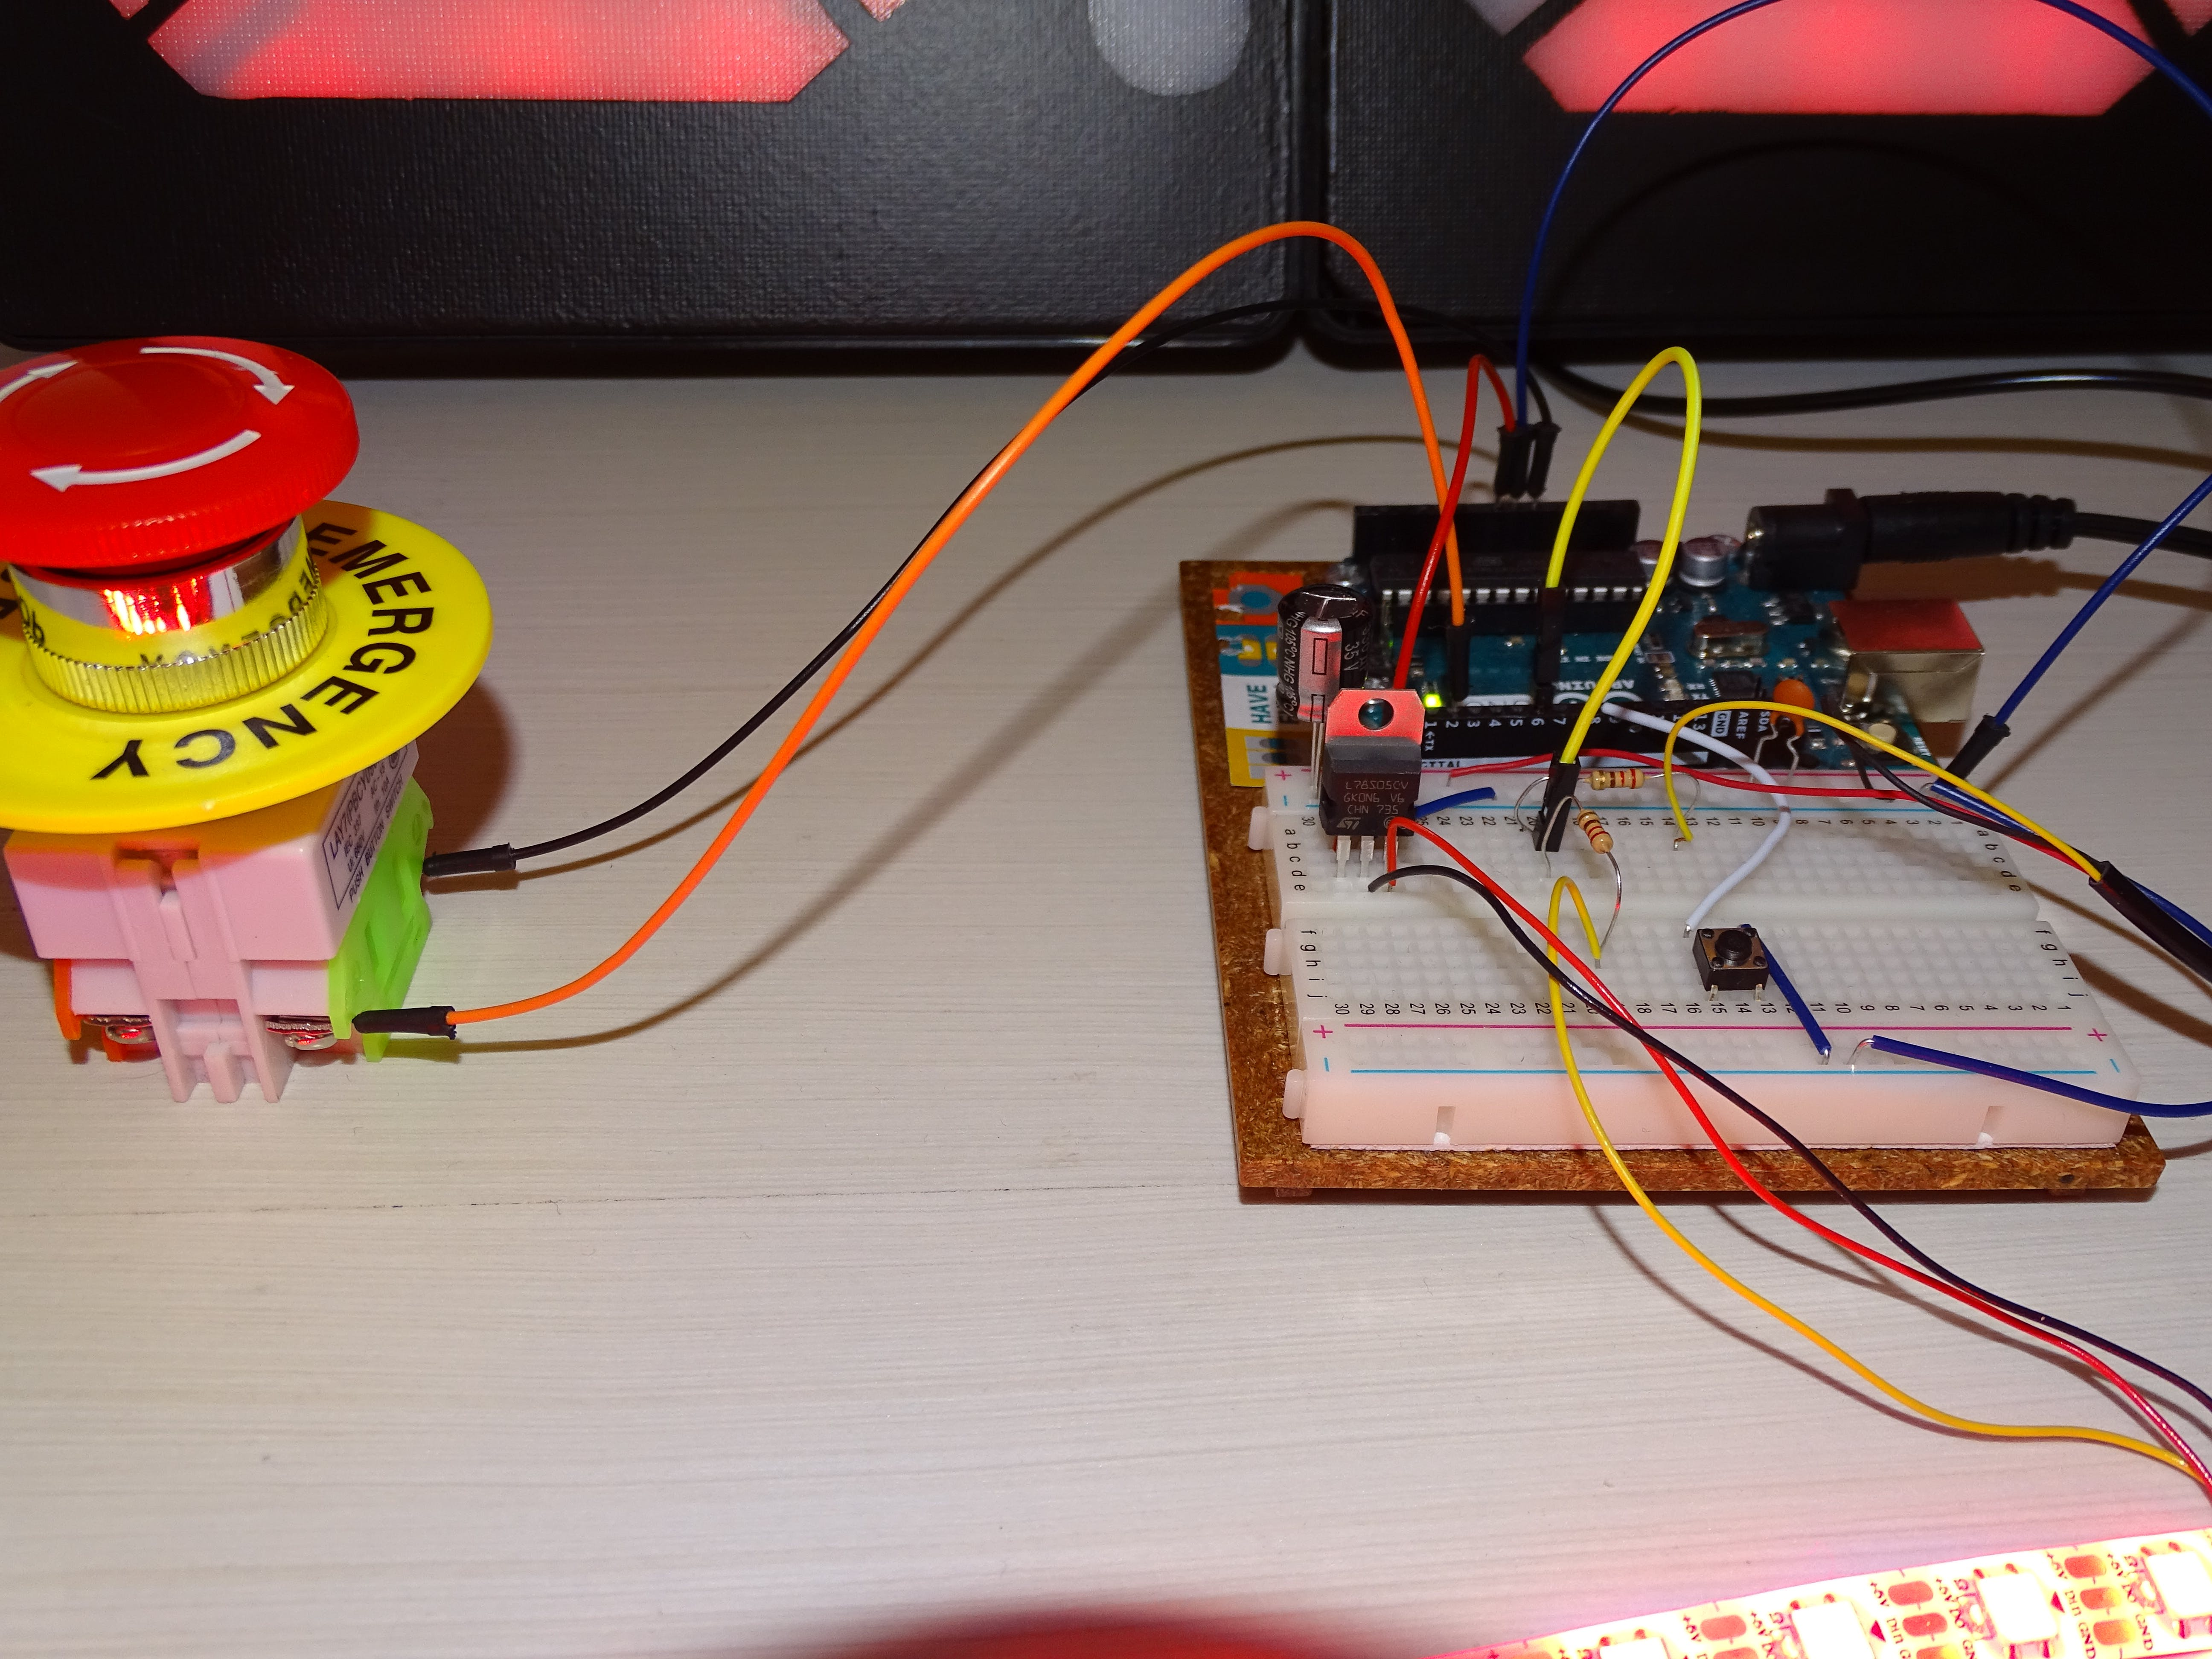 Breadboard set up with 7-segment displays and WS2812 Led trip connected in paralel